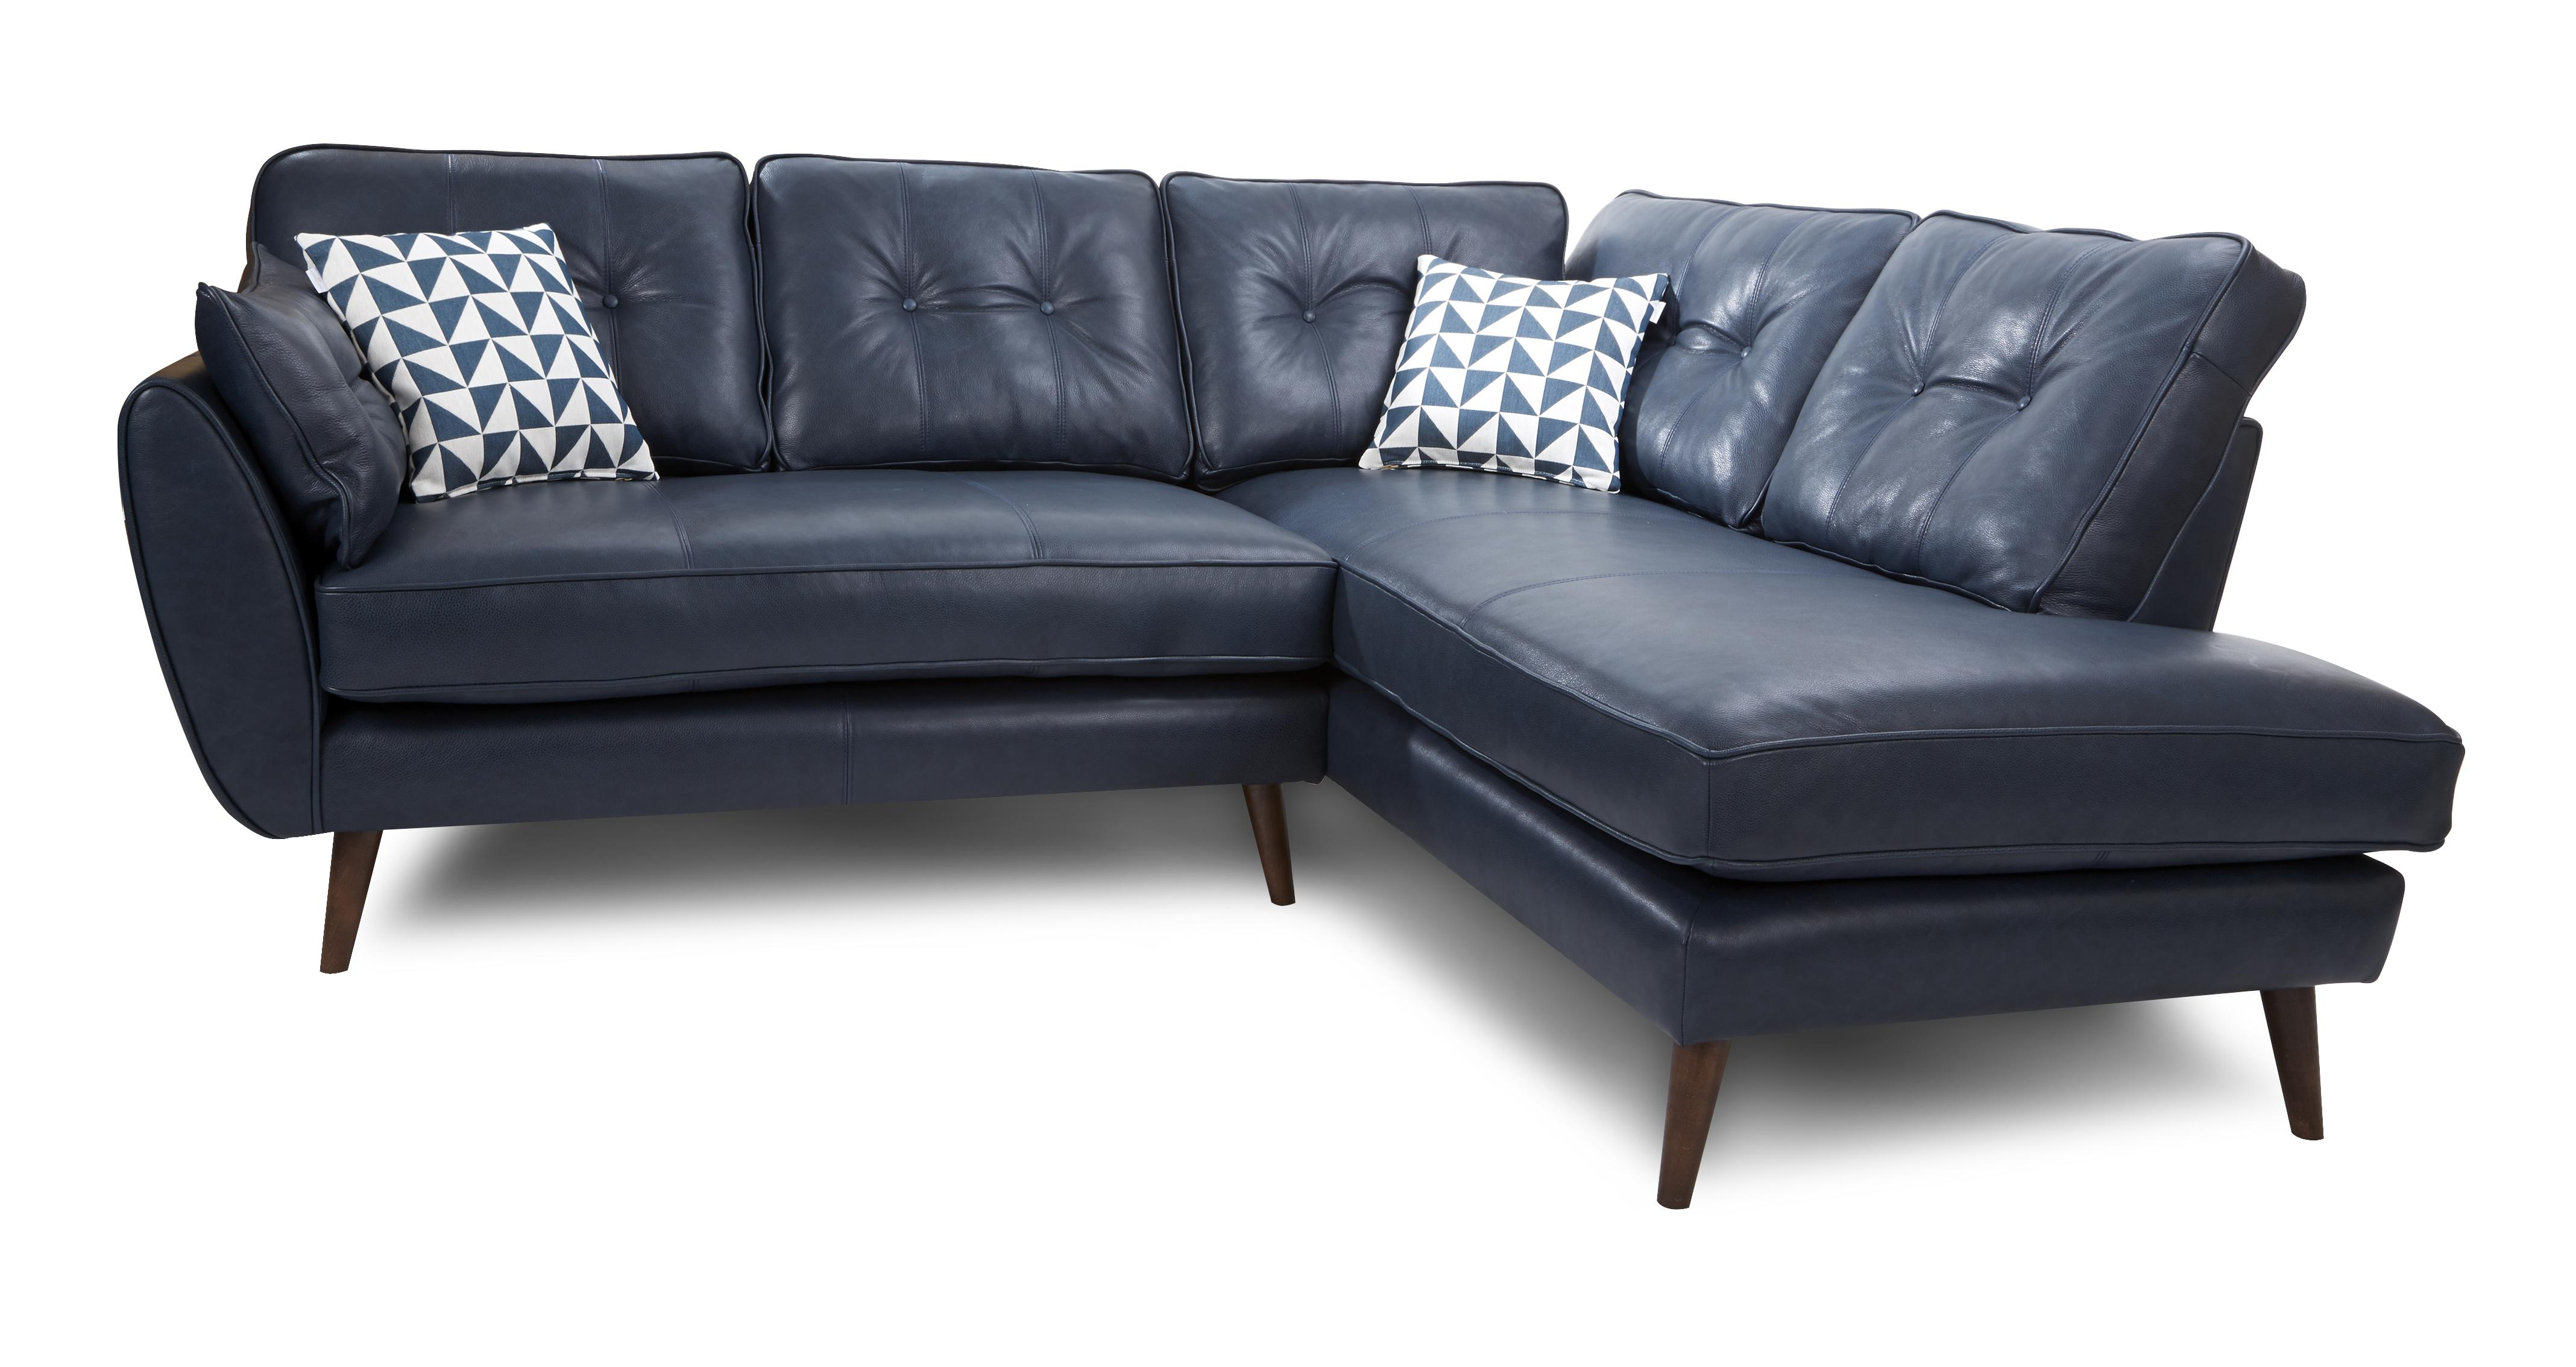 french connection slate sofa review twin sleeper dimensions dfs blue leather corner home co